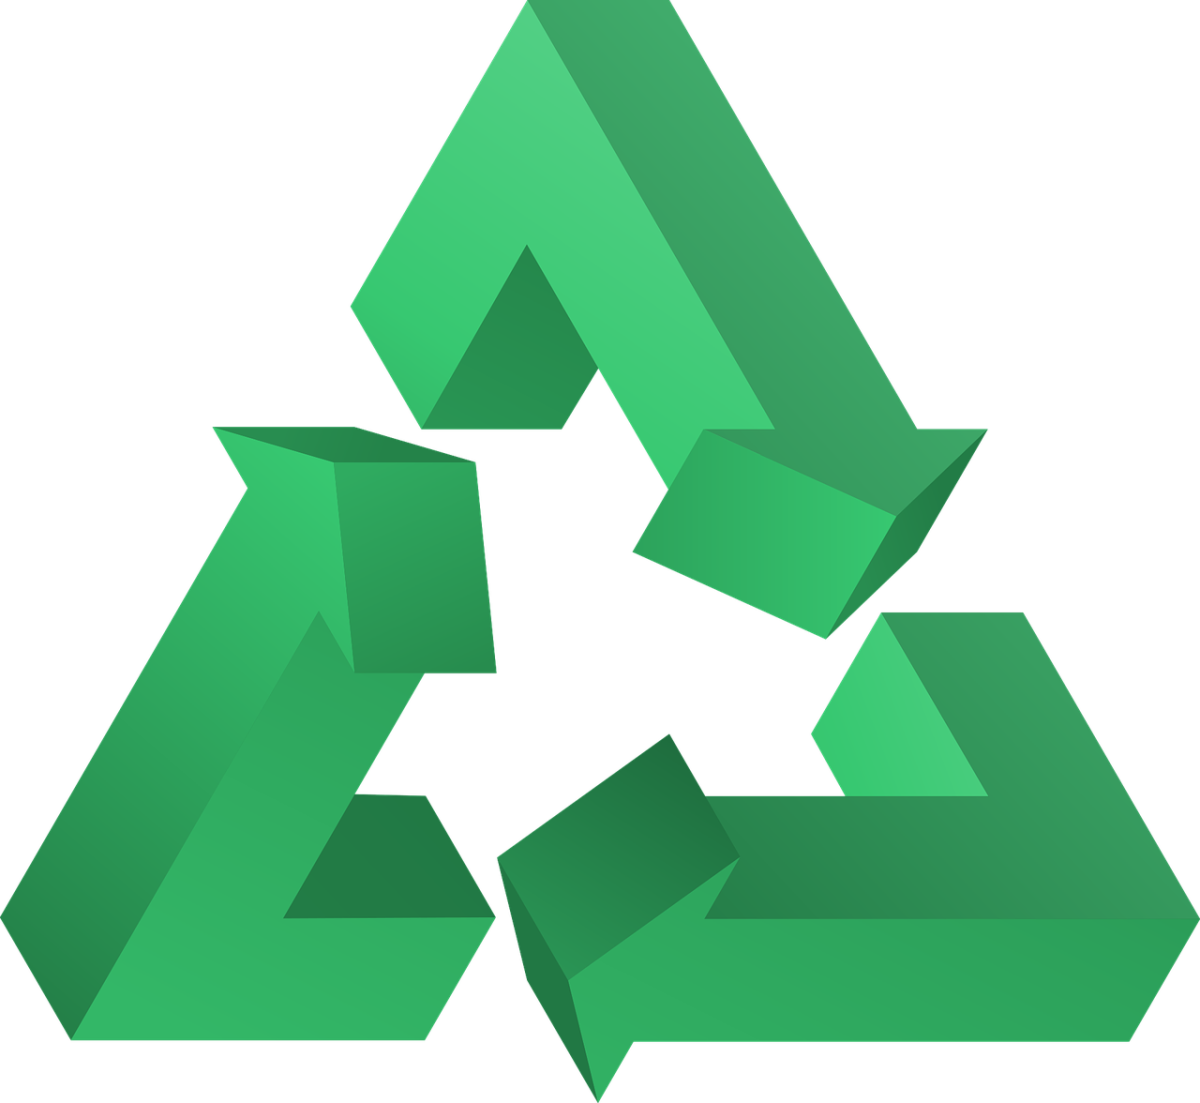 The infamous recycle triangle